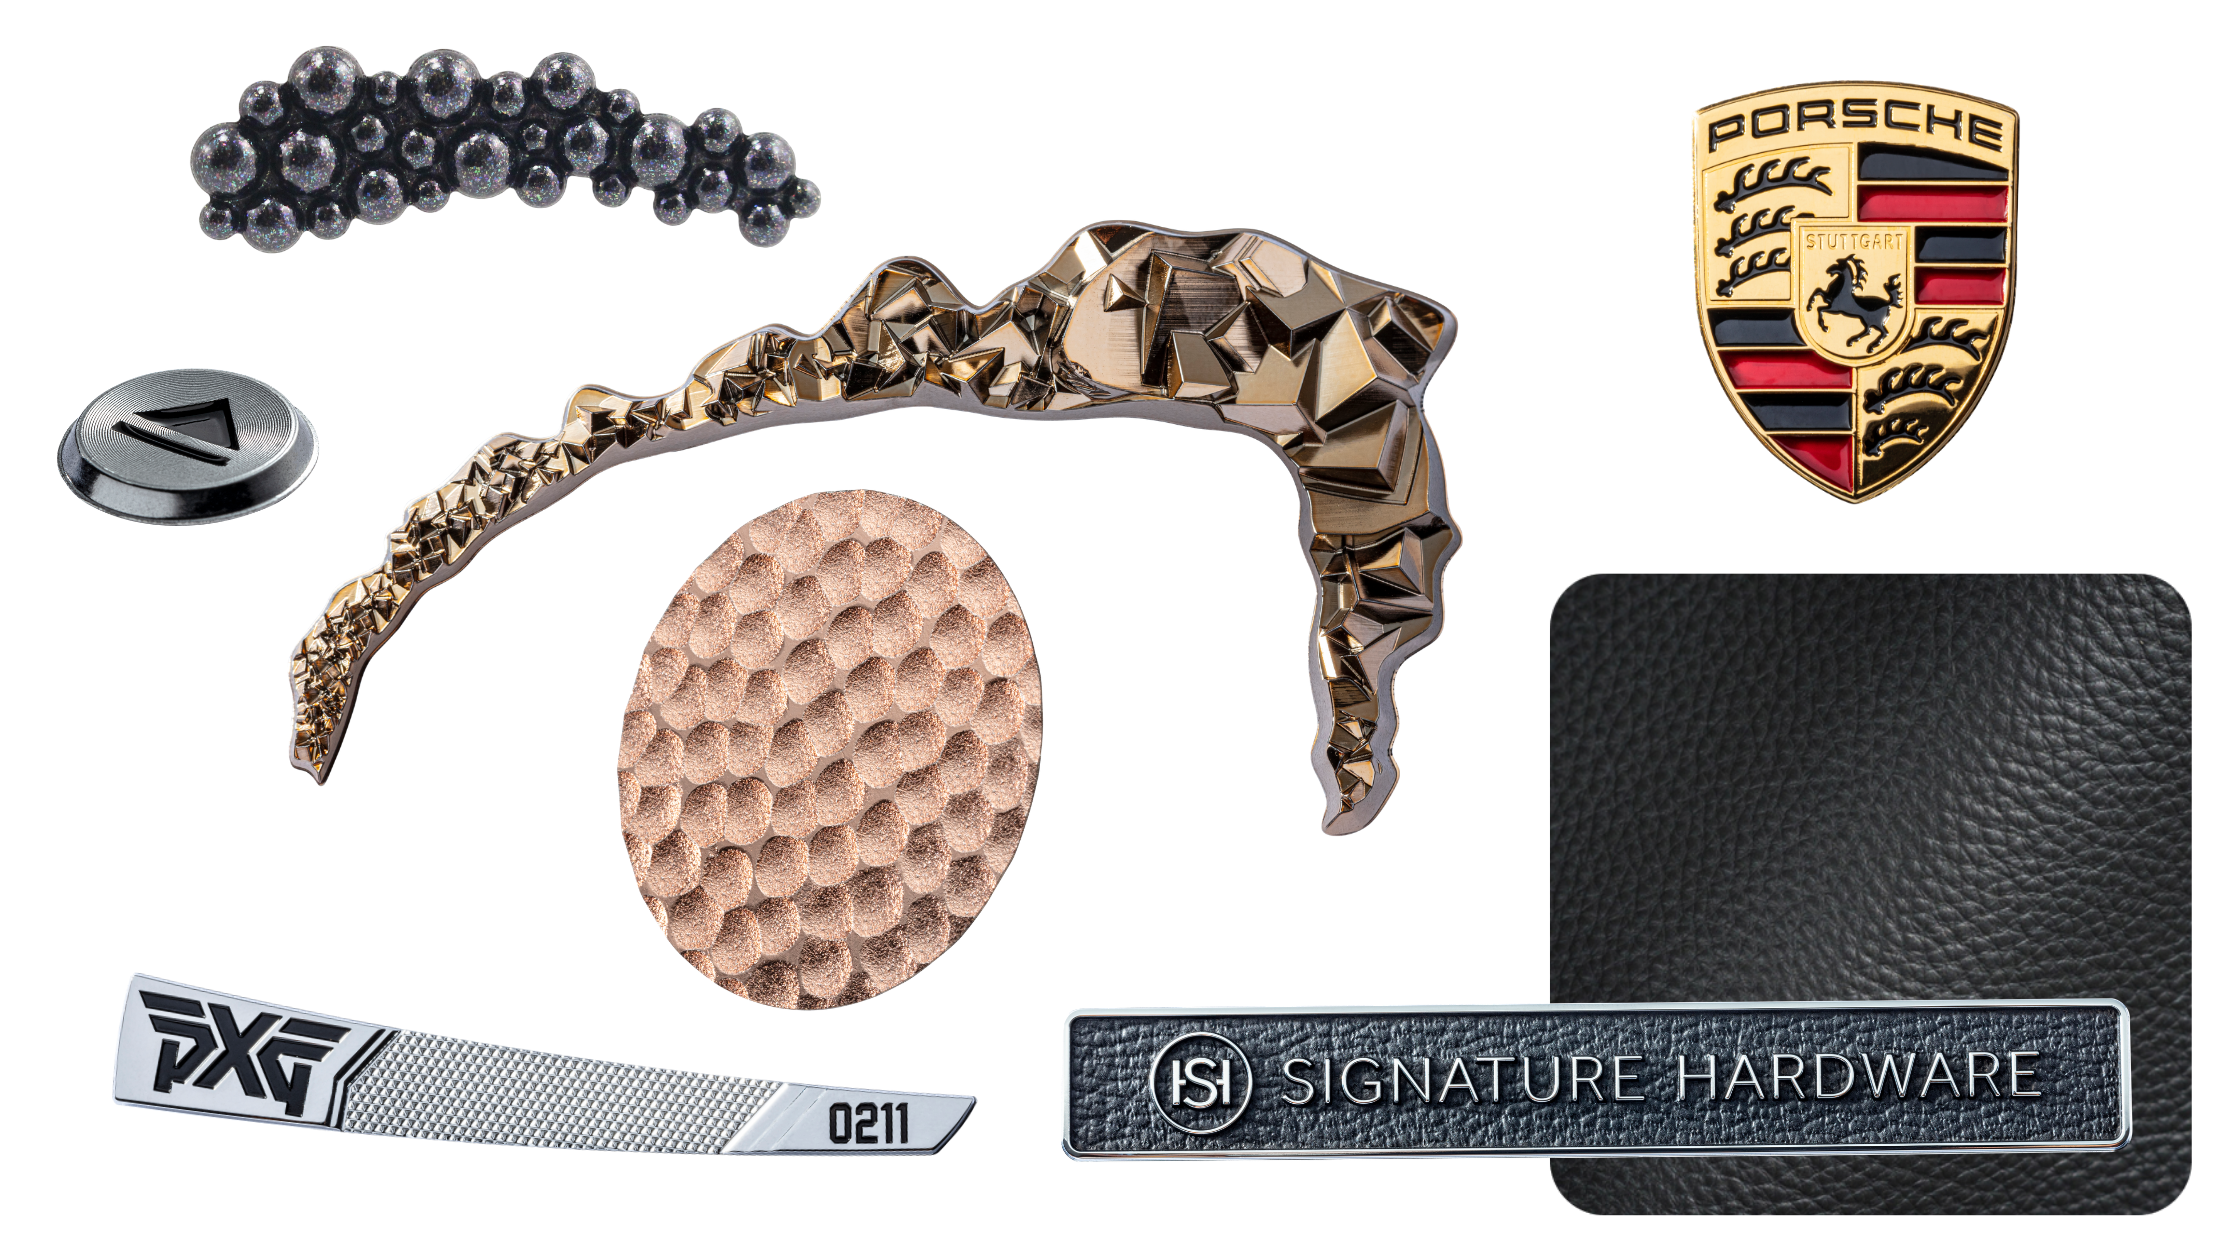 collage of name plates. black iridescent sloped piece with 3D bubbles, rose gold faceted curved trim piece, rose gold hammered metal circle piece, porsche logo, swatch of black leather, leather name plate, chrome plated golf emblem